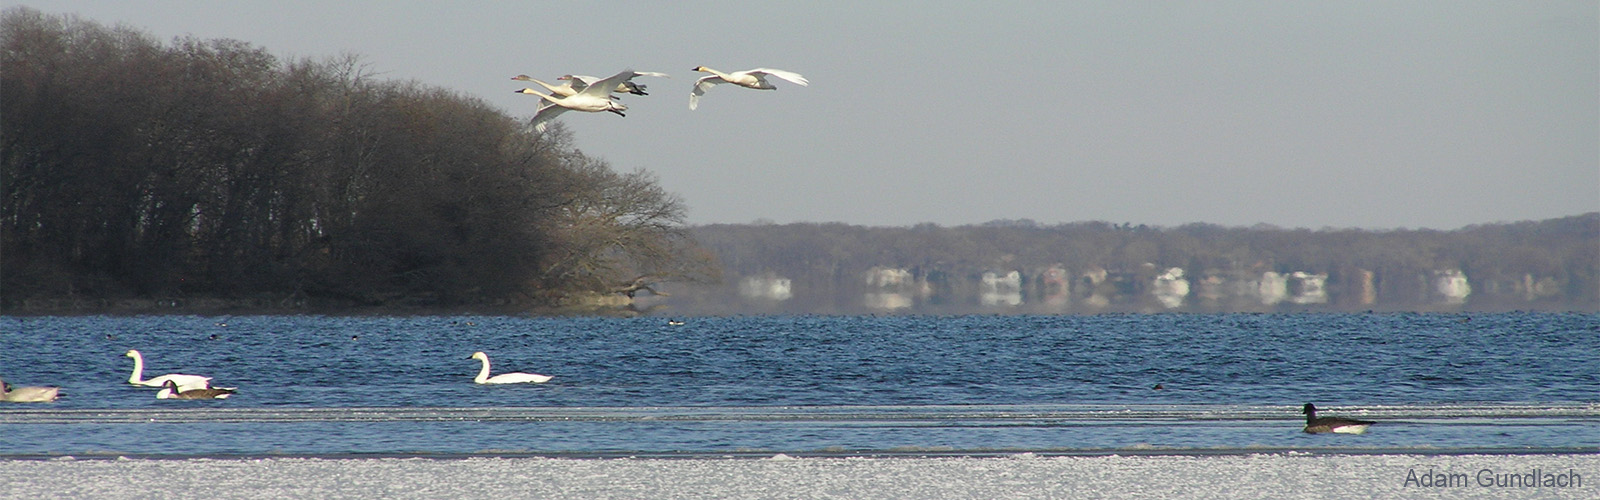 White tundra swans flying over University Bay Drive with Picnic Point in background.